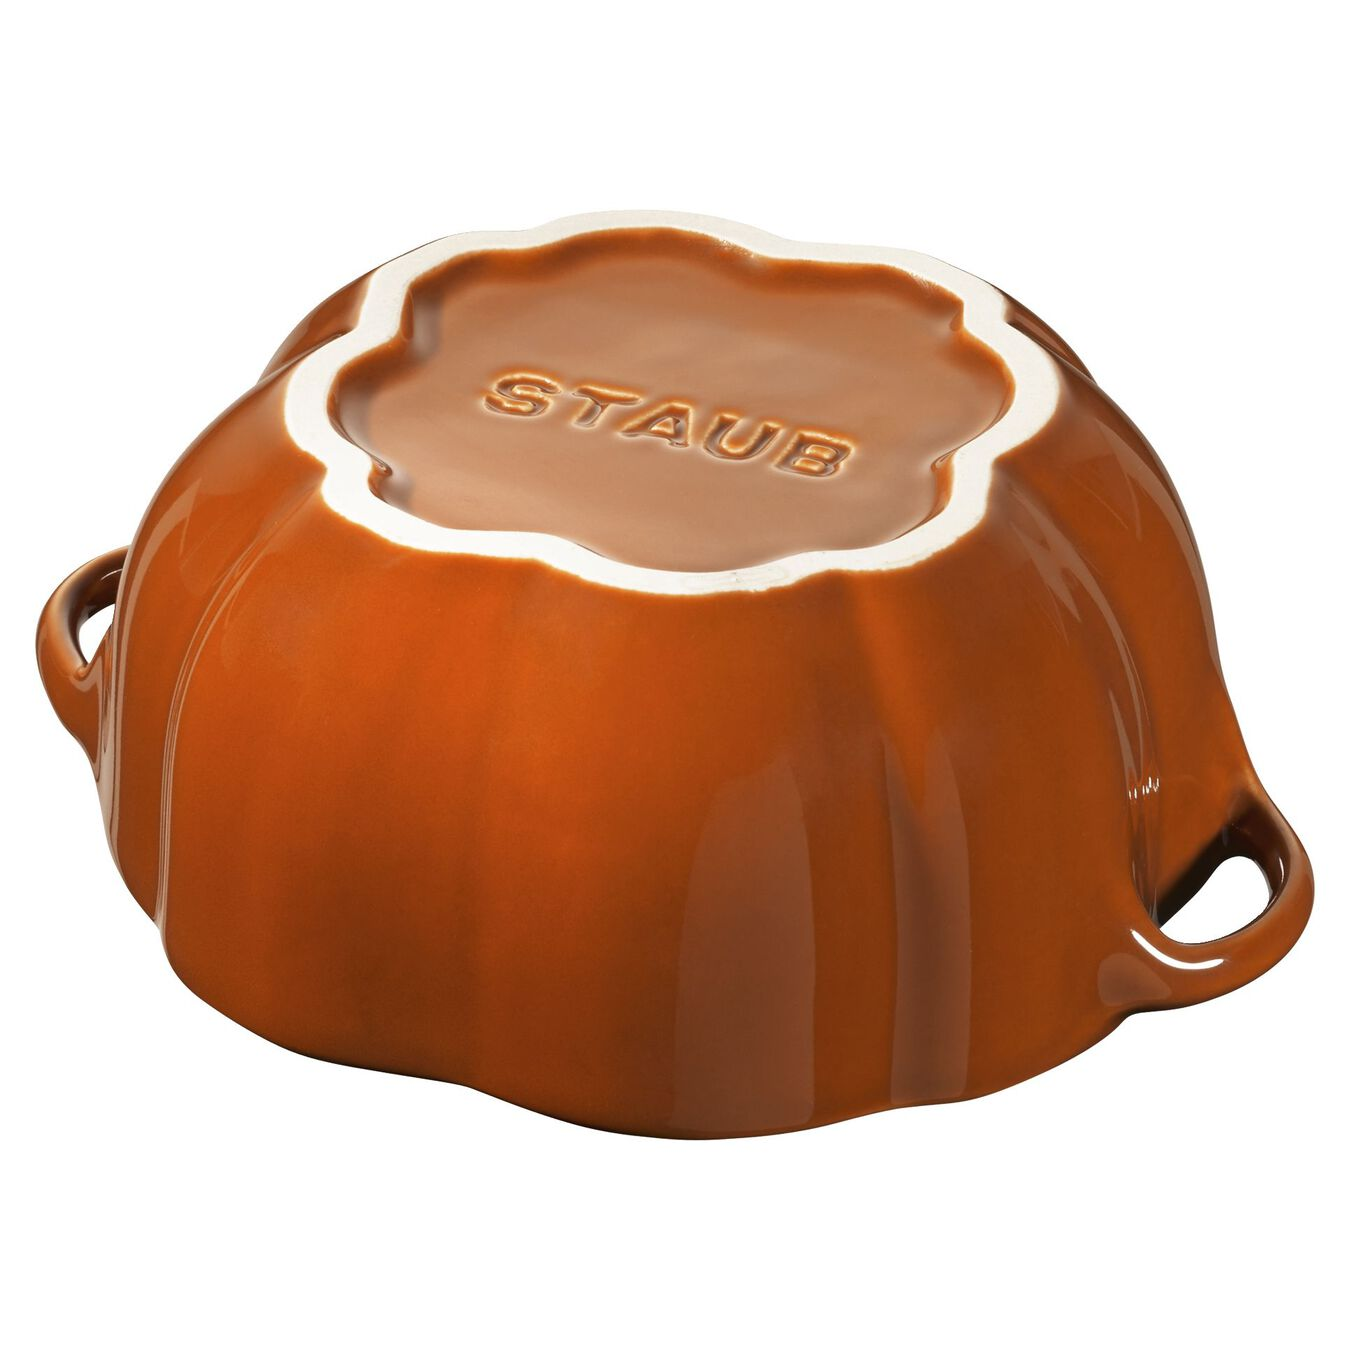 16-oz Petite Pumpkin Cocotte - Burnt Orange,,large 5